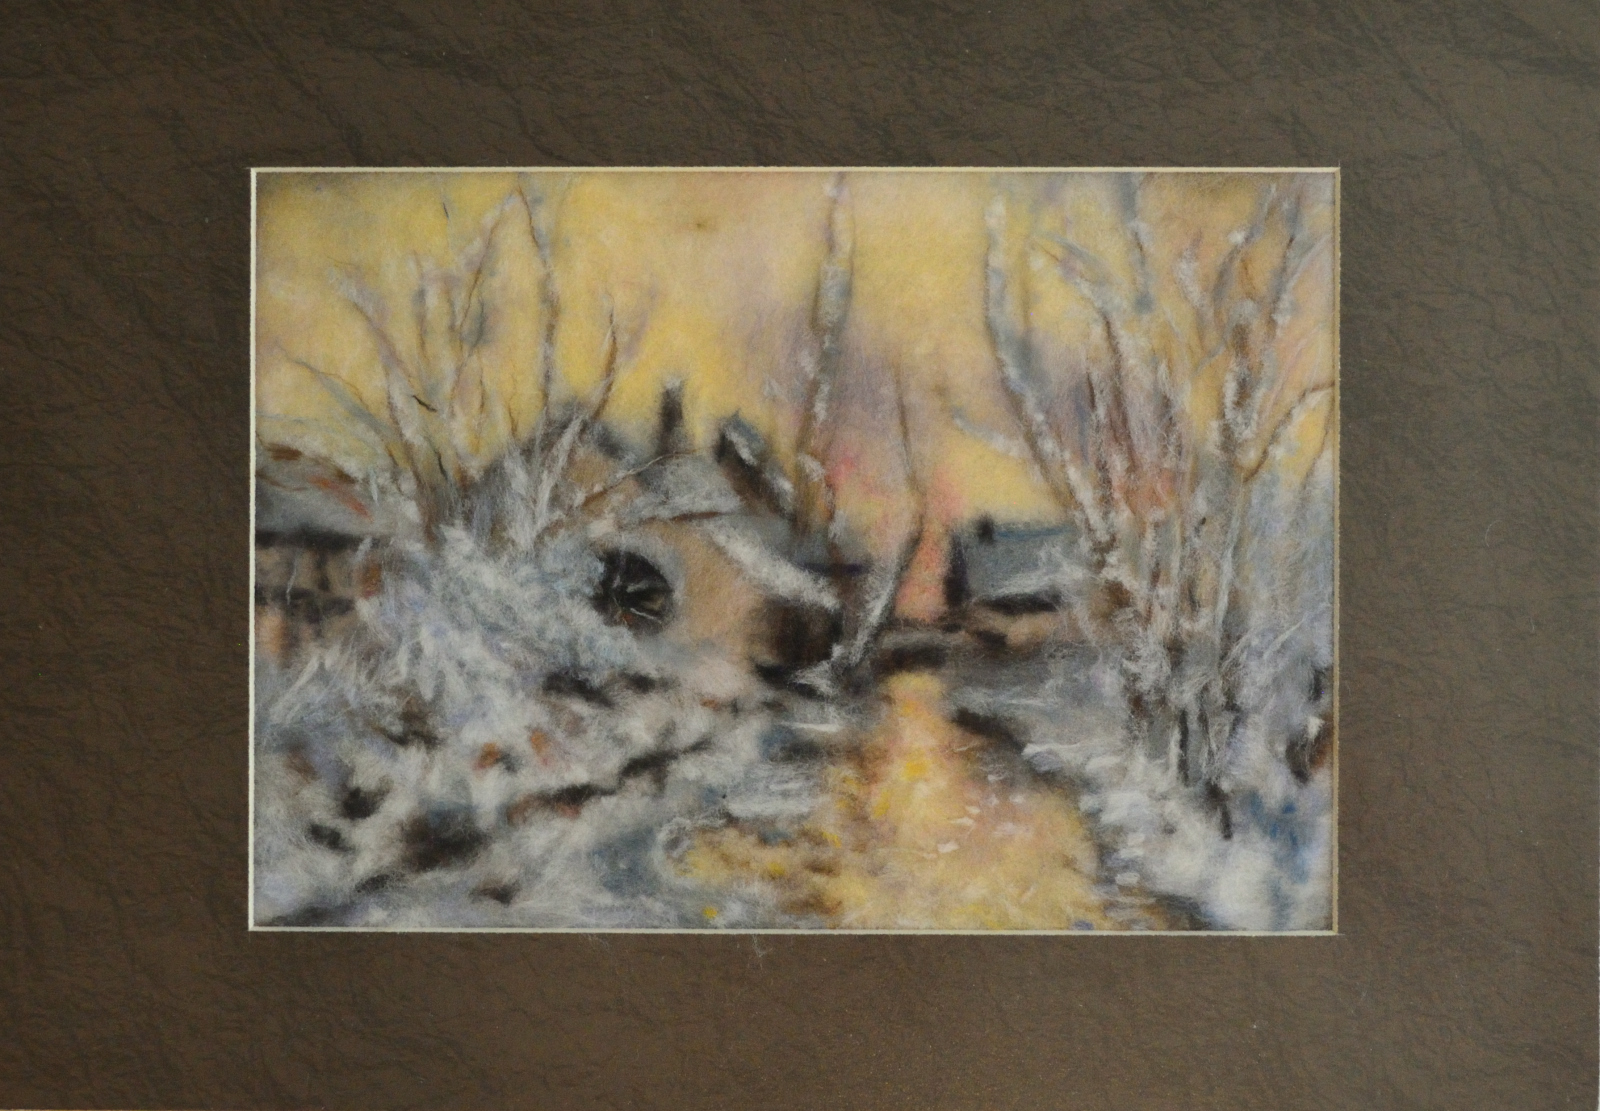 Spring. Wool Art Gallery. Picture made of fine merino wool